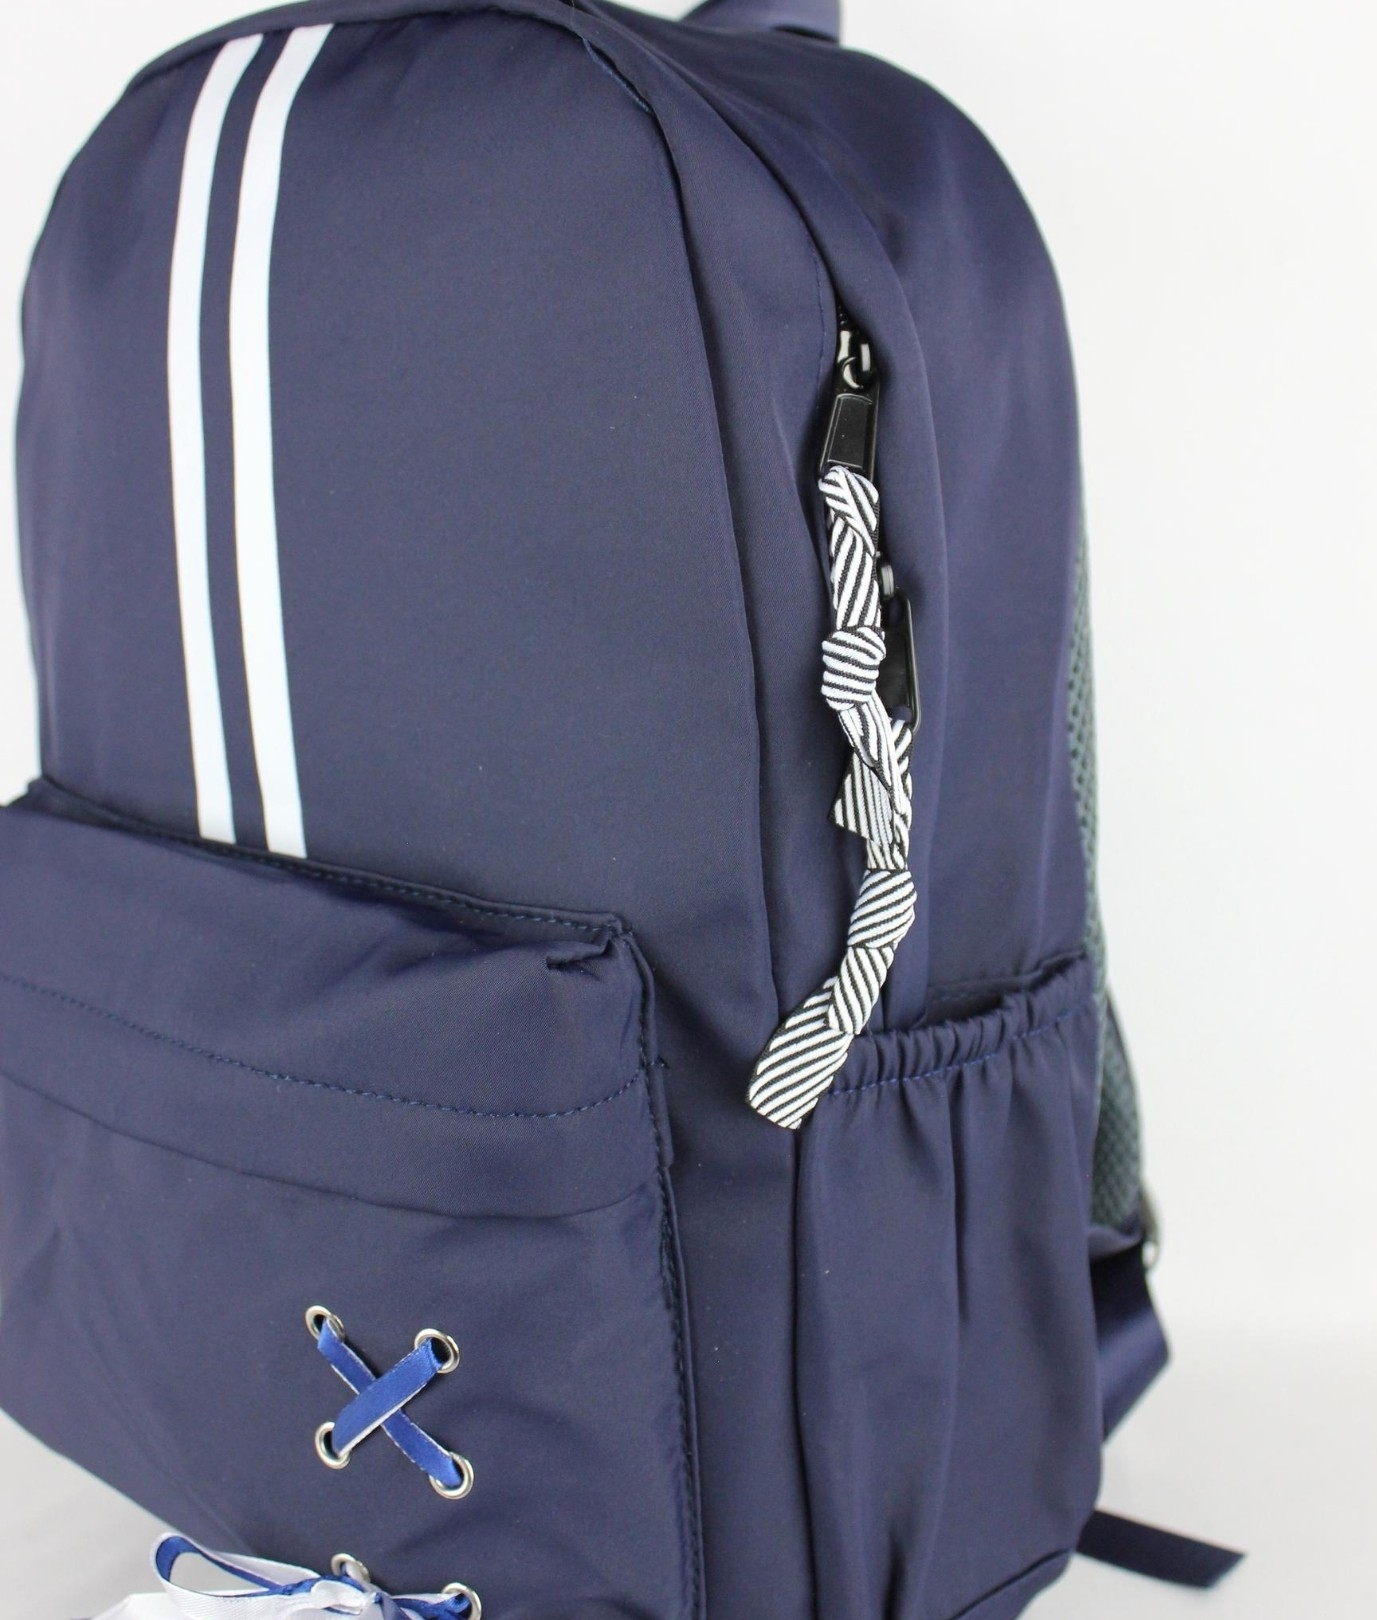 Backpack Florencia - Navy Blue